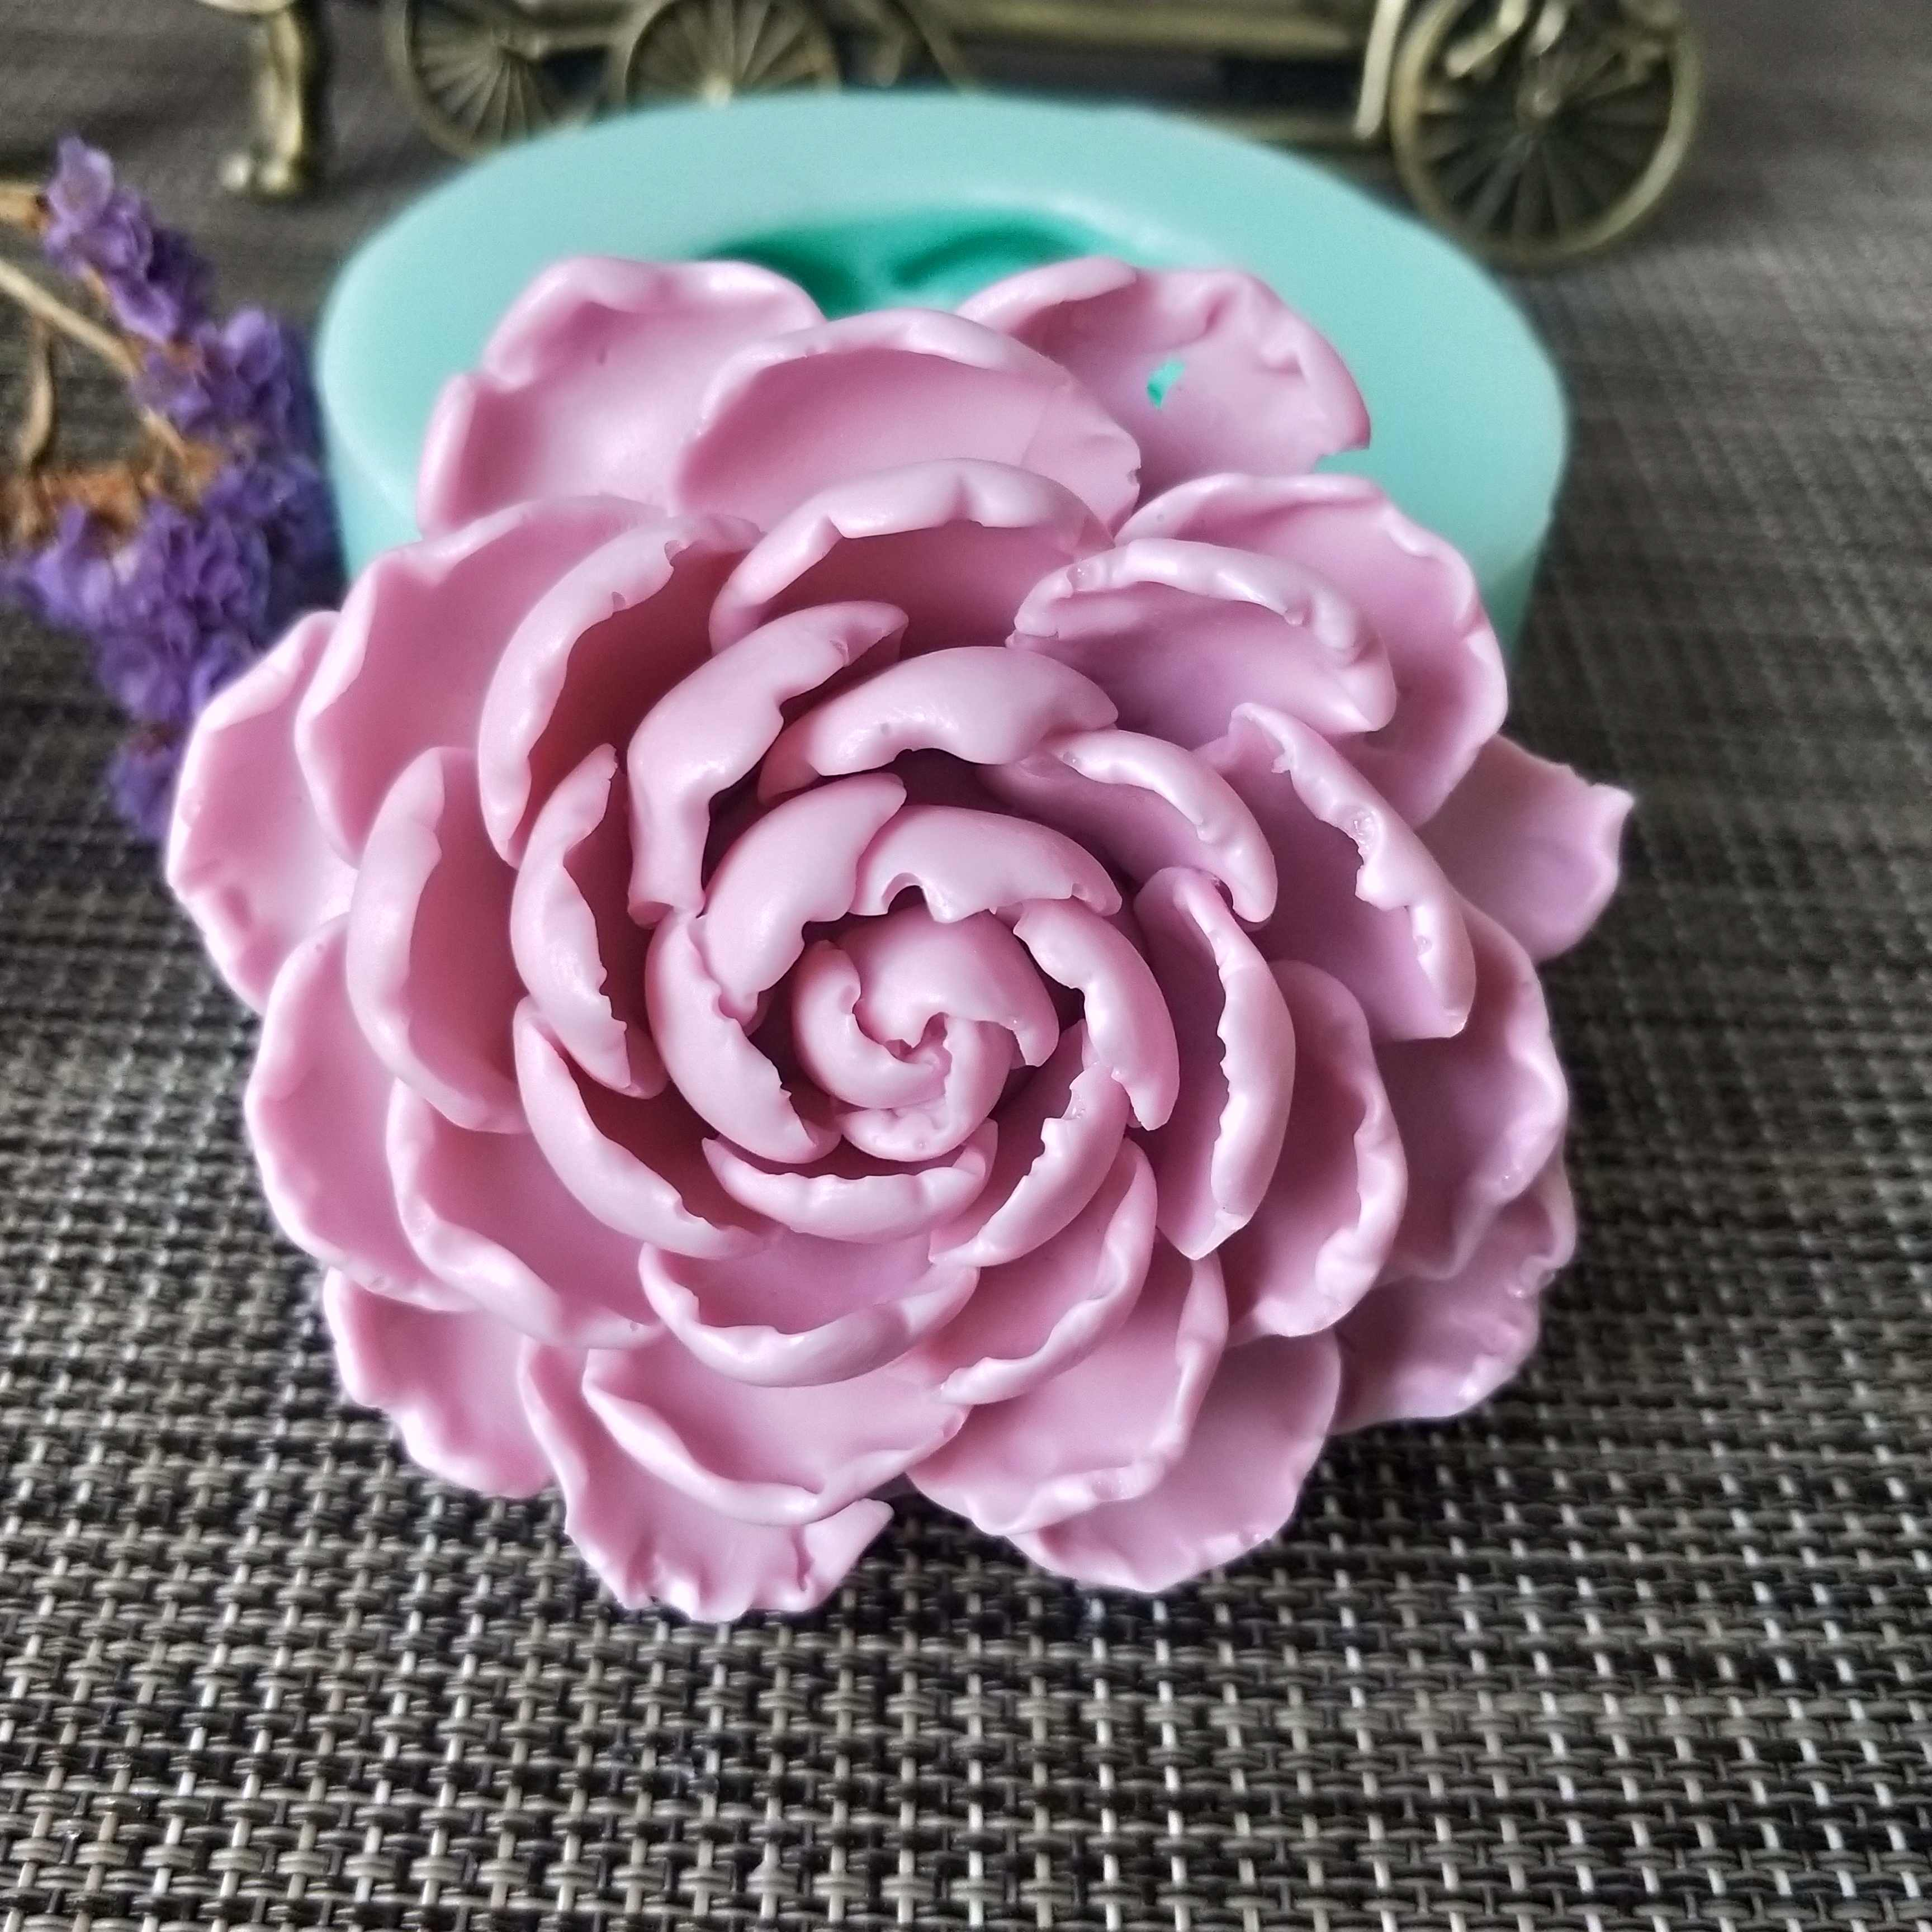 Silicone MP soap mold 3D Blooming Chrysanthemum Silicone Mold